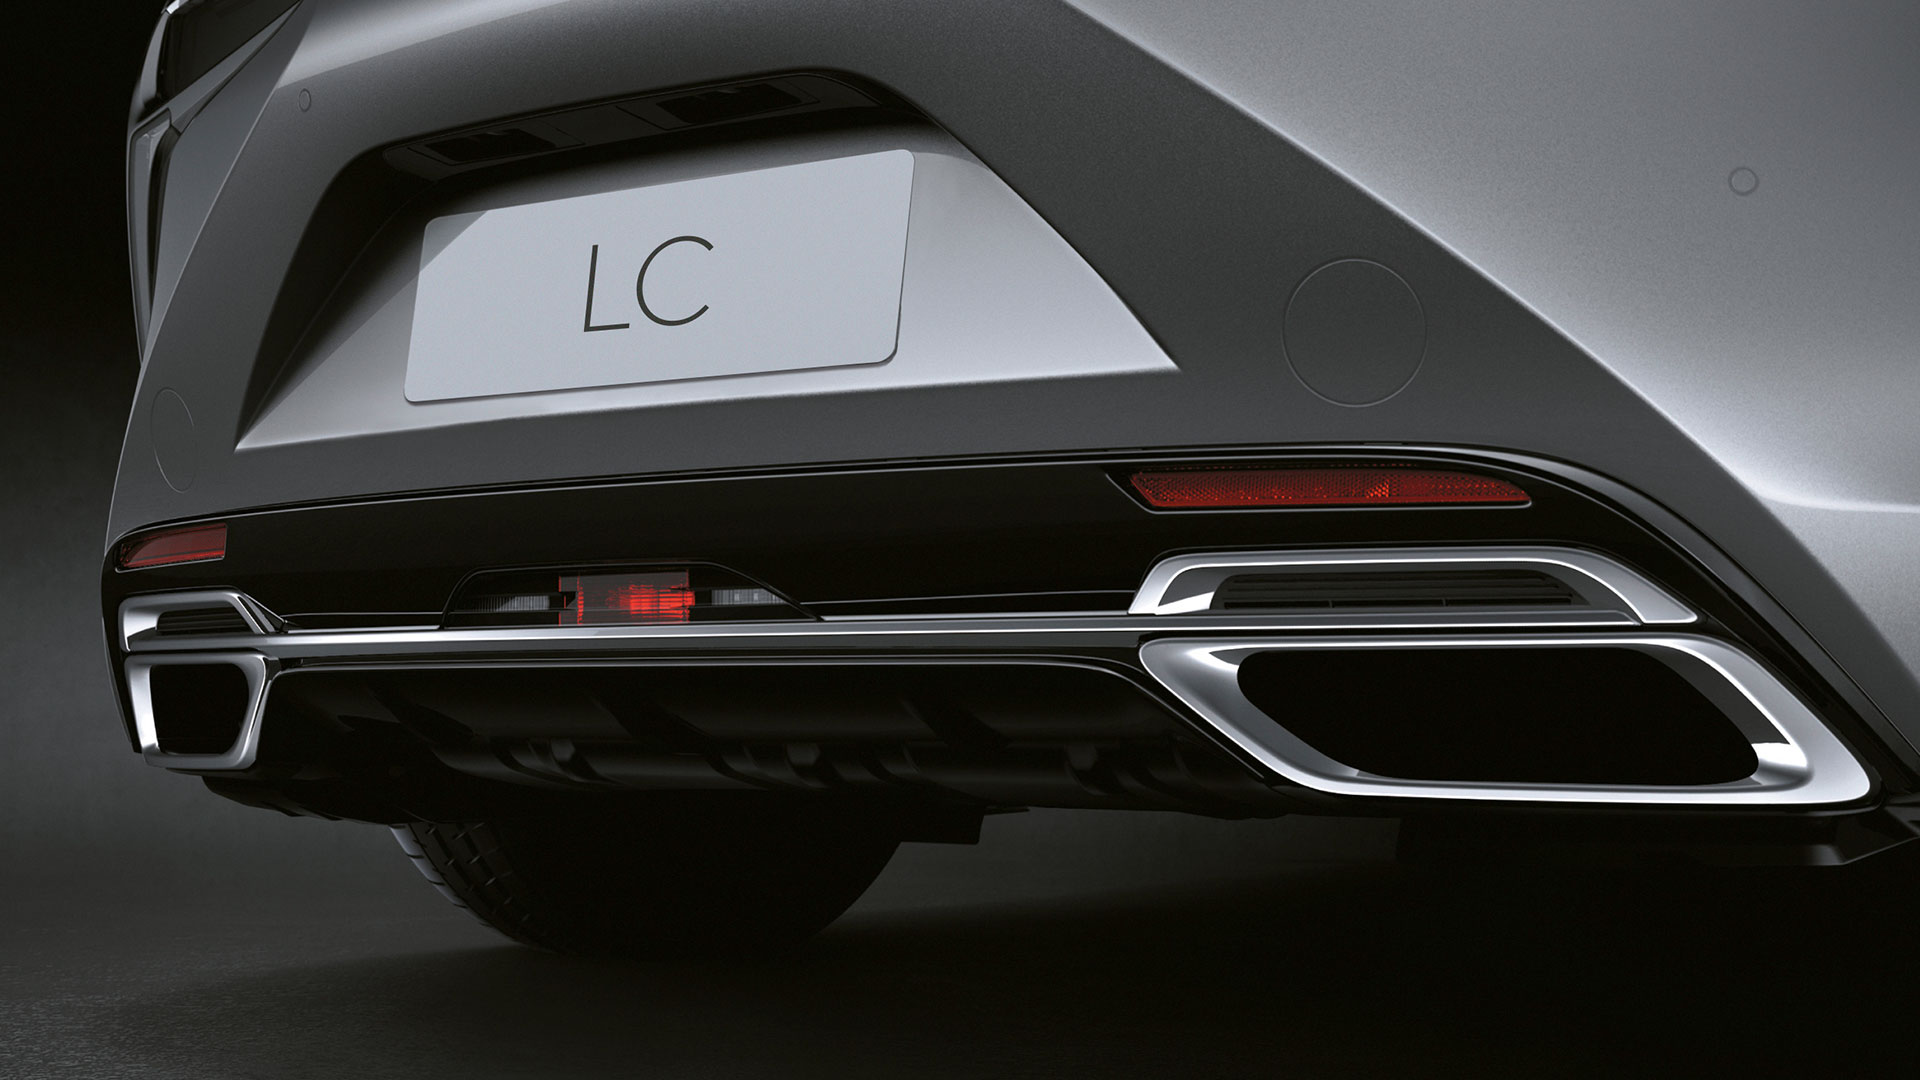 2017 lexus lc 500 features parking assist monitor